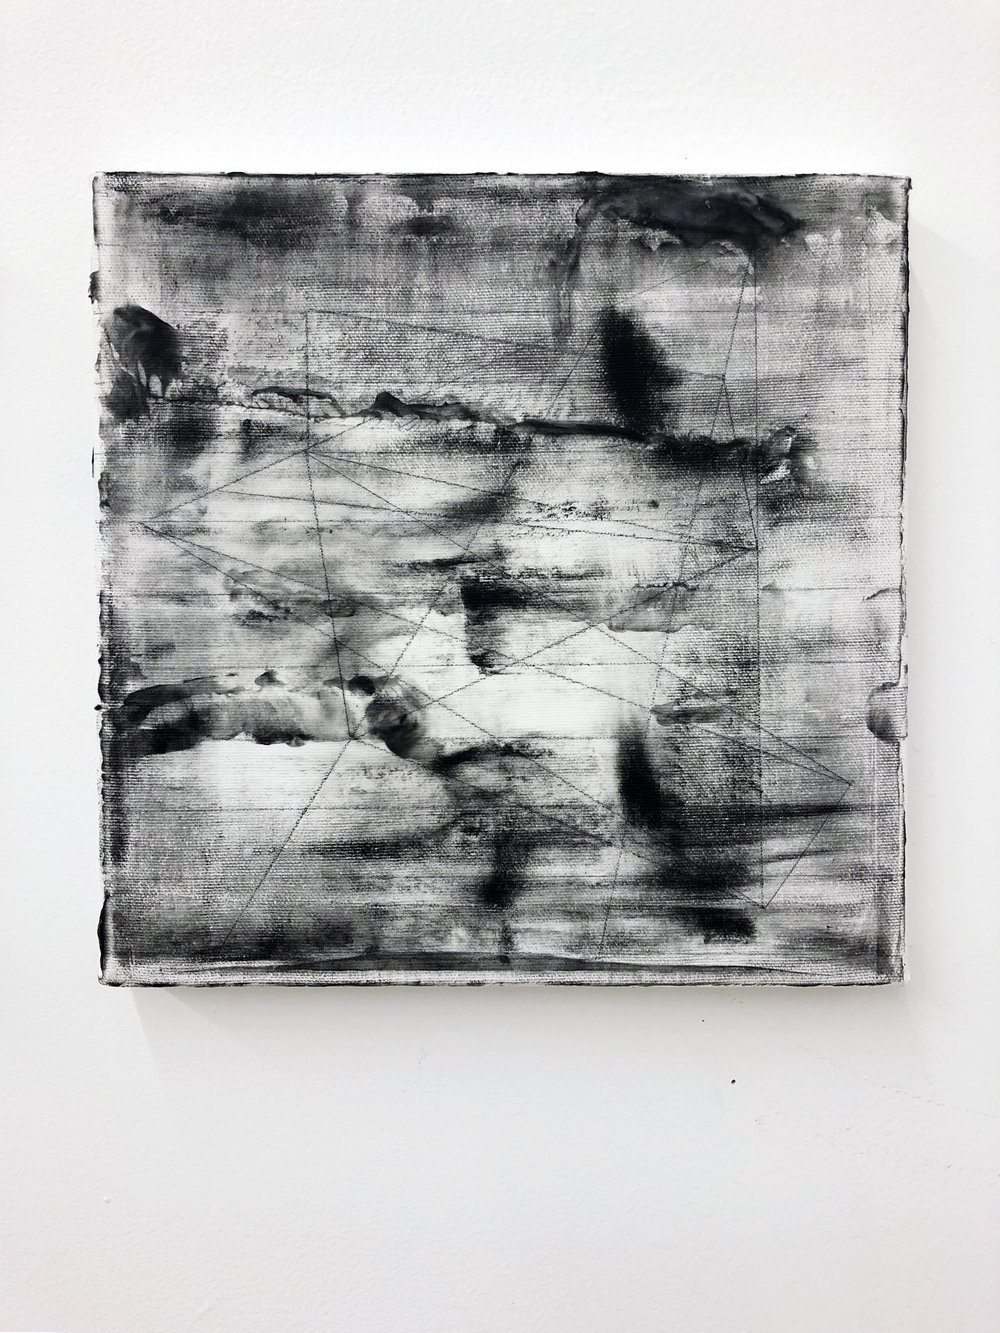 """Code painting 2 . Graphite, gouache, oil, beeswax. 10 x 10"""", 2018/2019."""